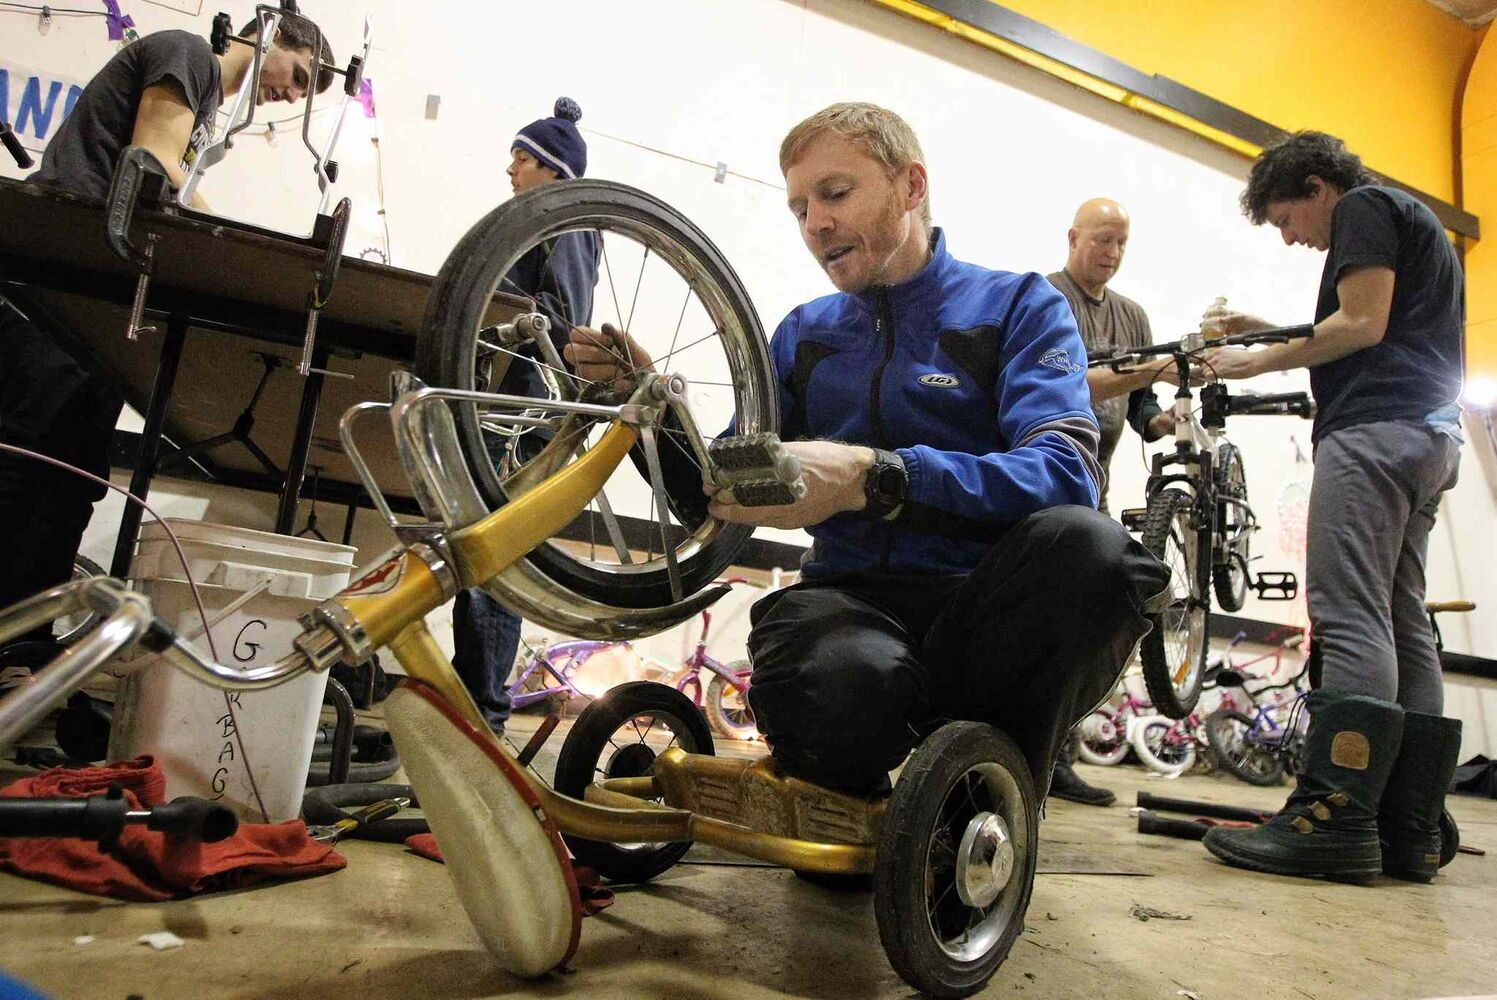 Manitoba provincial cycling team coach Jayson Gillespie works on a tricycle during the Cycle of Giving bike-building marathon. (MIKE DEAL / WINNIPEG FREE PRESS)